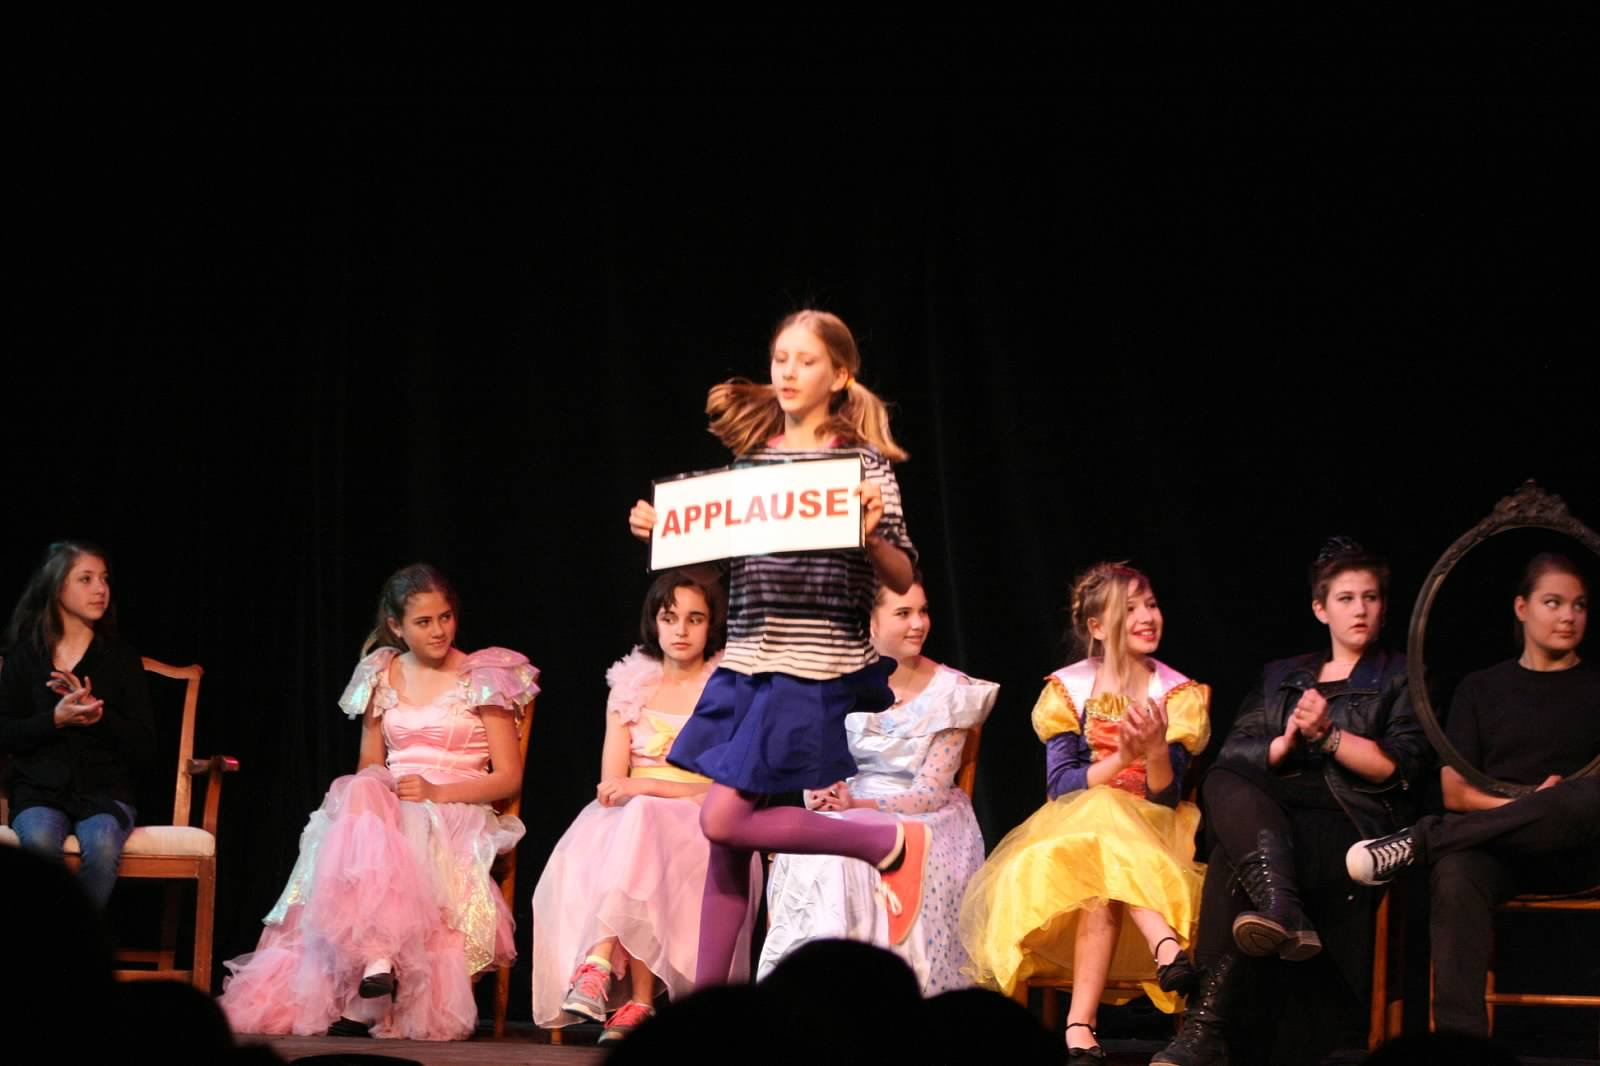 Girls perform in musical